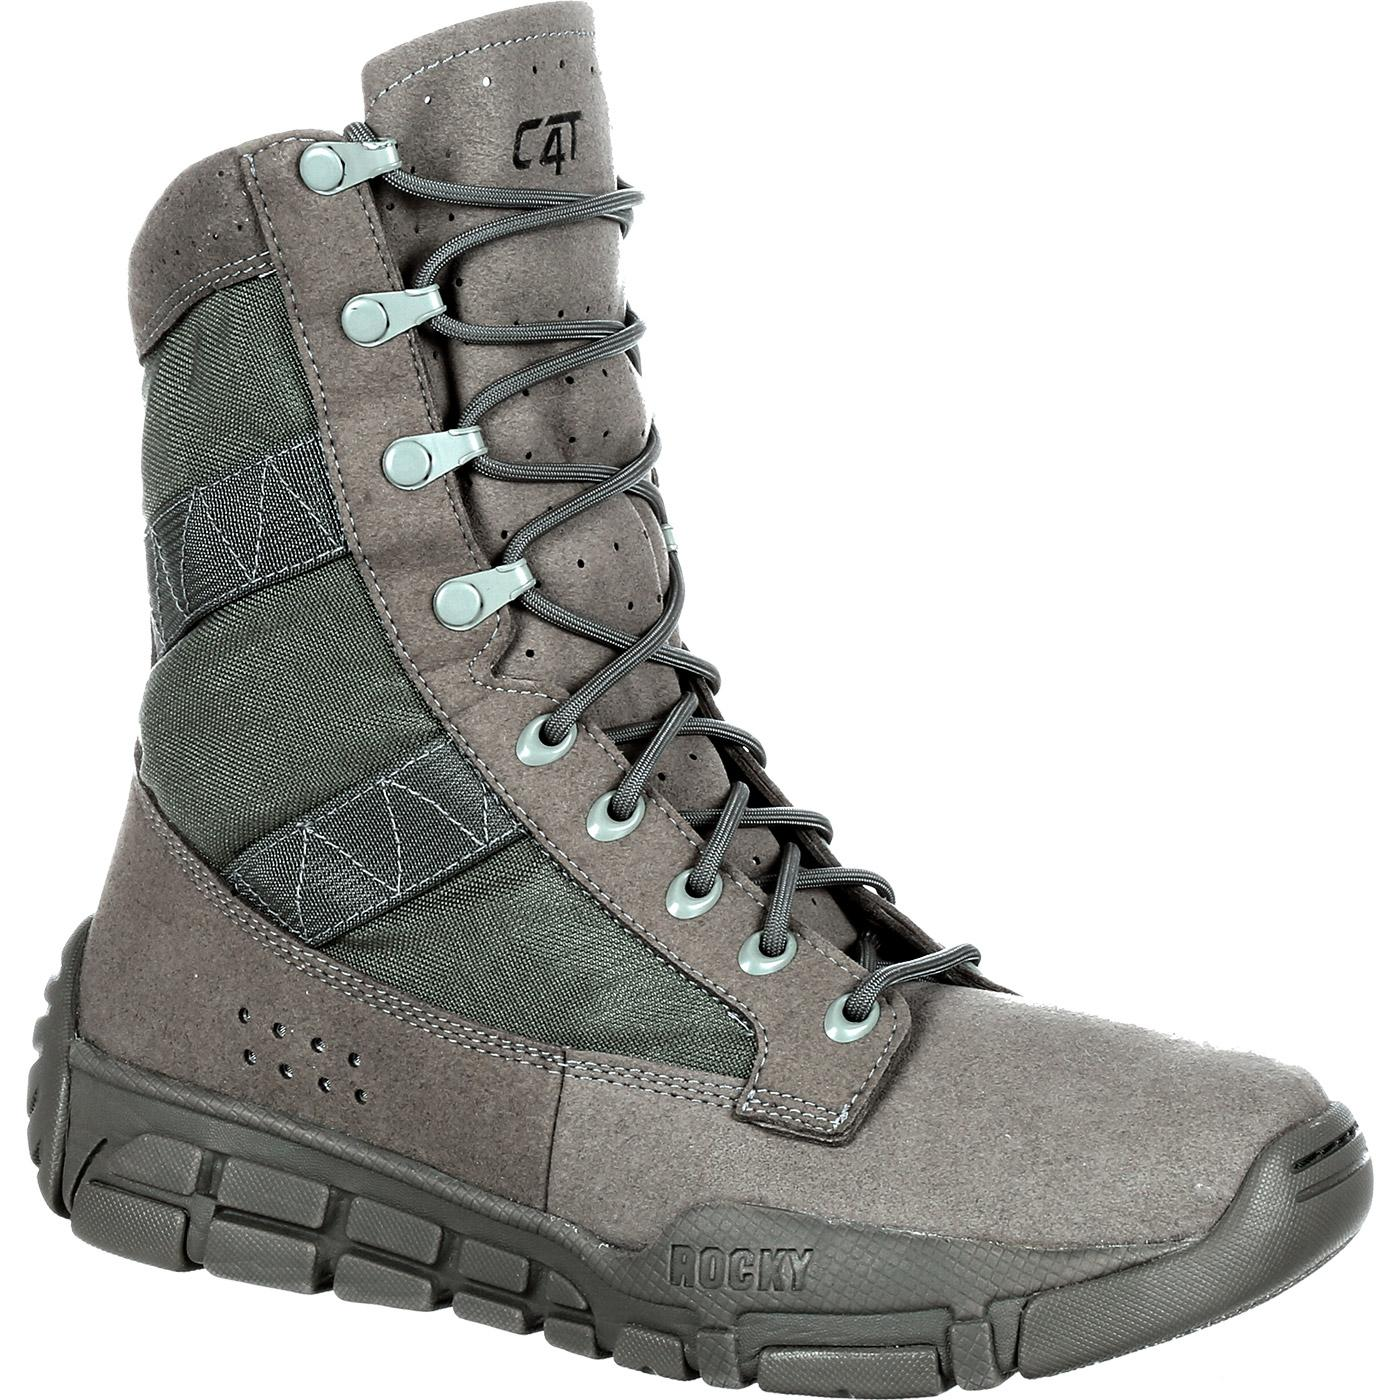 Lightweight Military Duty Boot, Rocky C4T Trainer FQ0001073